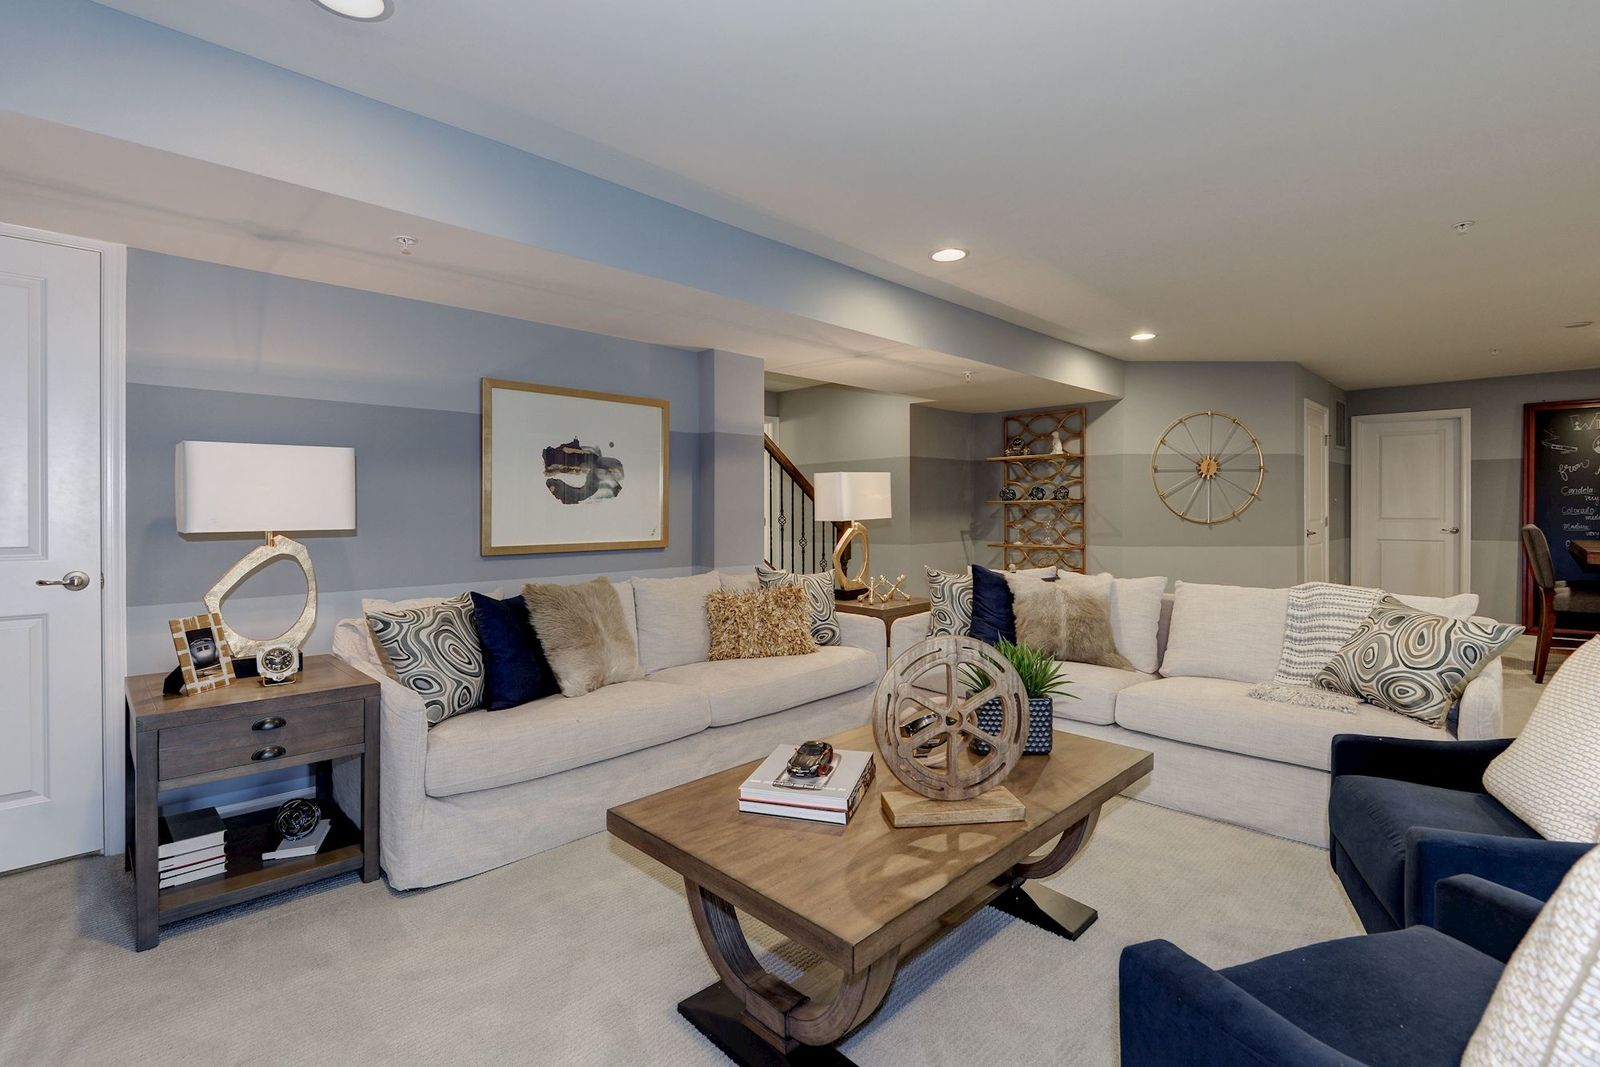 Living Area featured in the Landon By HeartlandHomes in Morgantown, WV